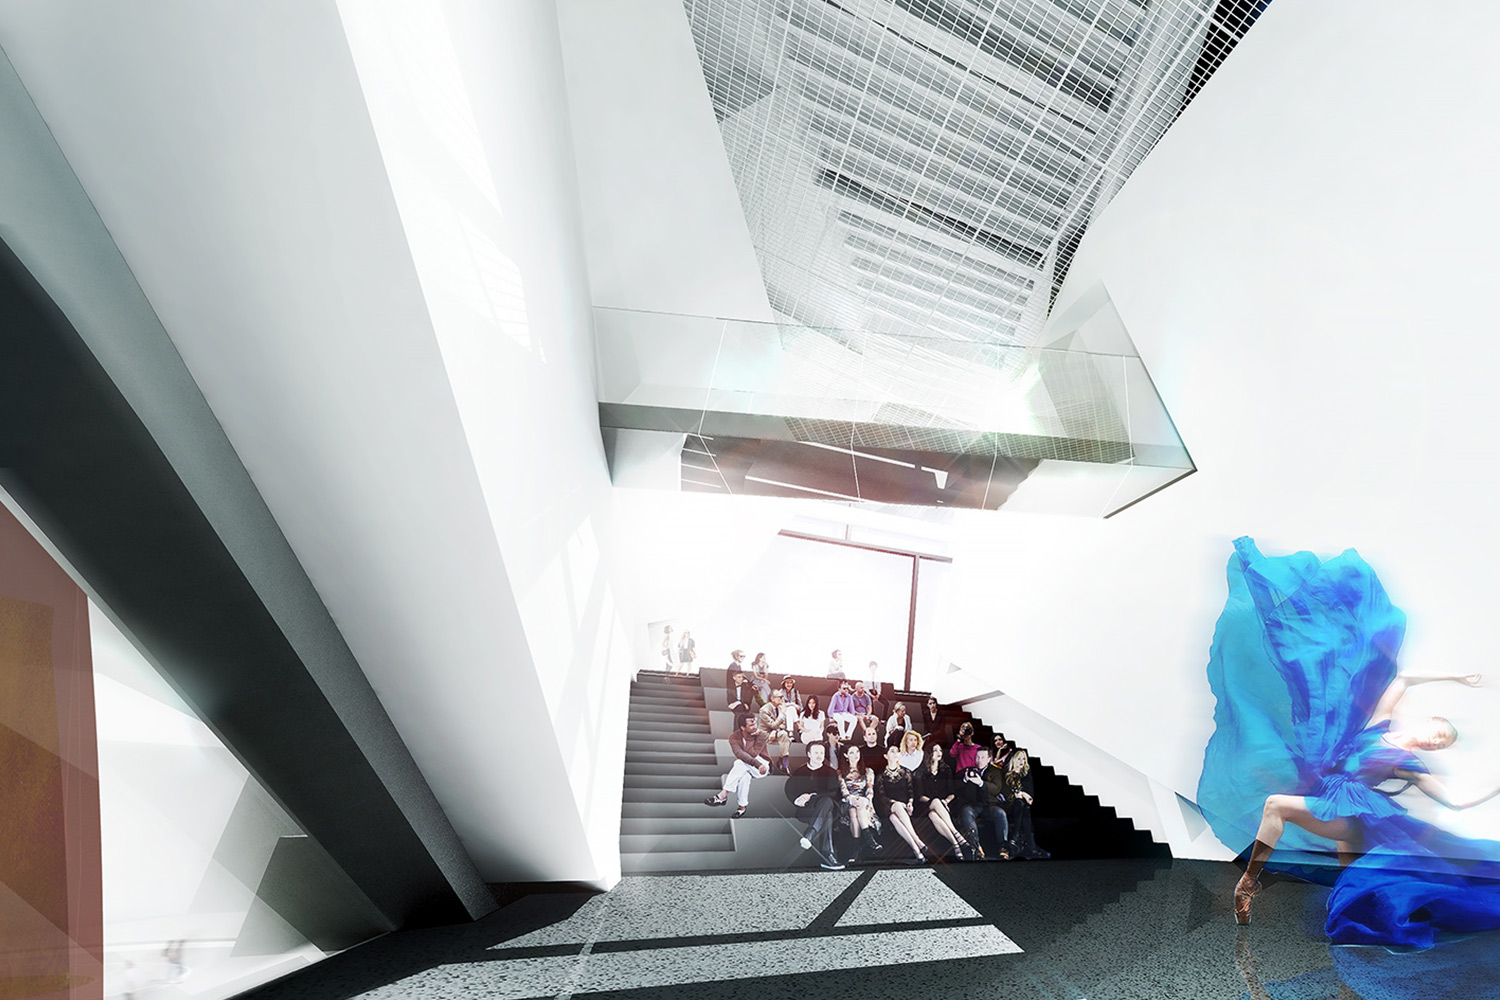 A dancer performing for a seated audience within OCMA's new building